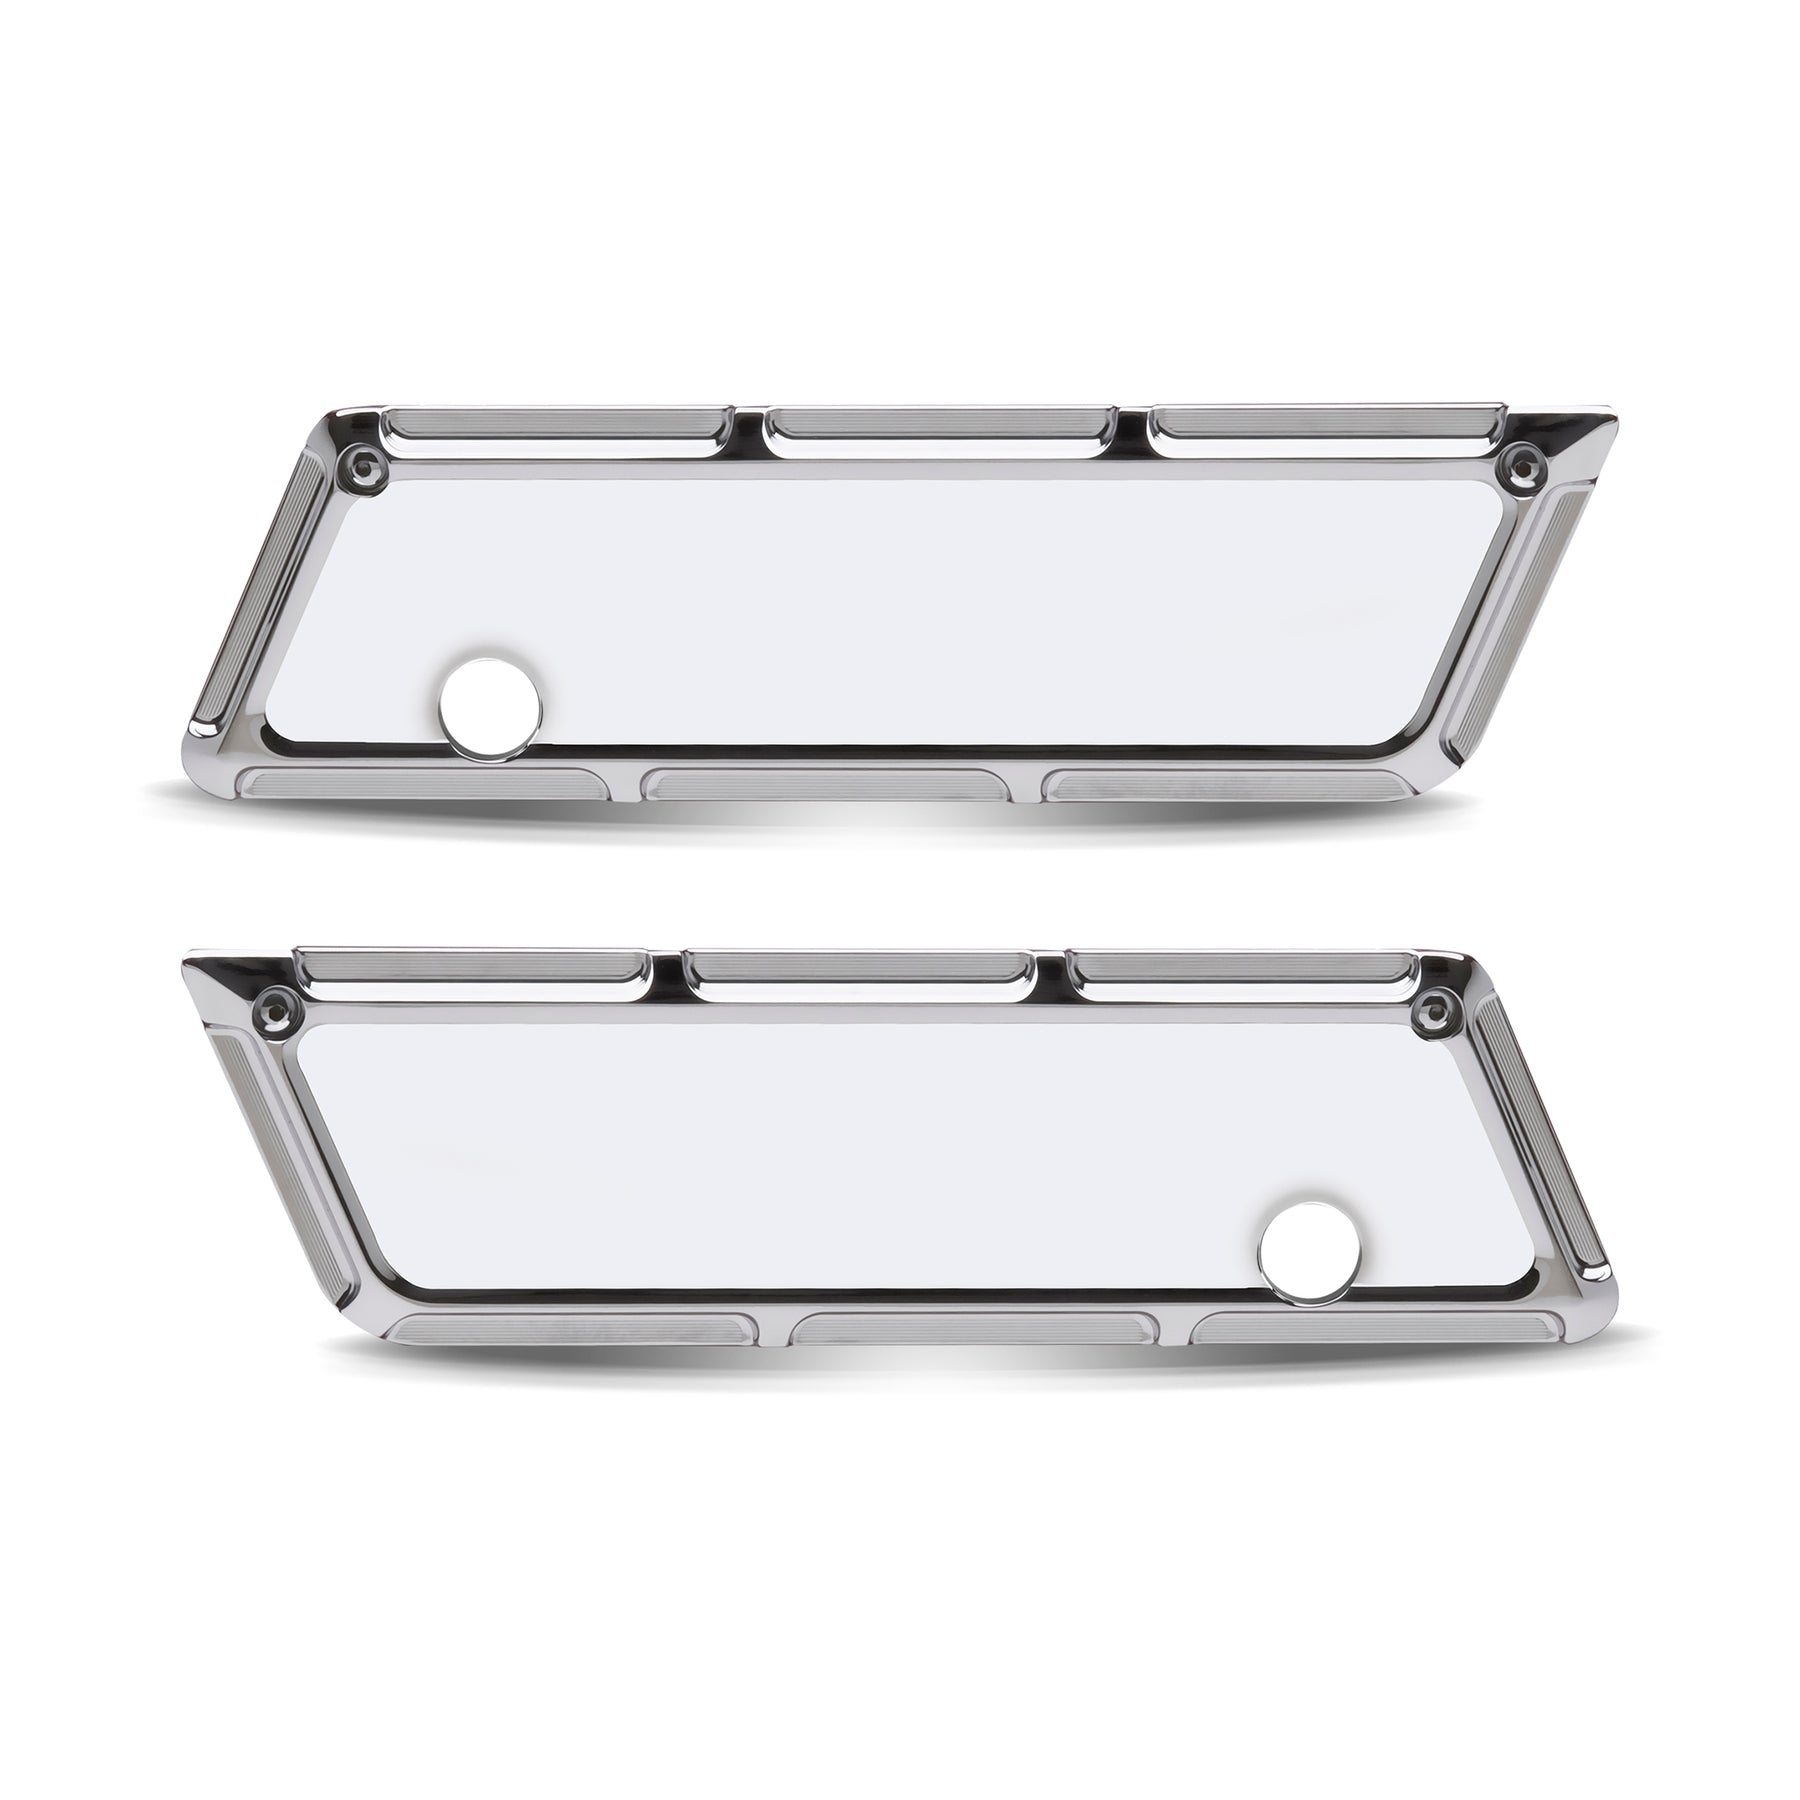 Beveled Saddlebag Latch Covers, Chrome 93-13 FLT